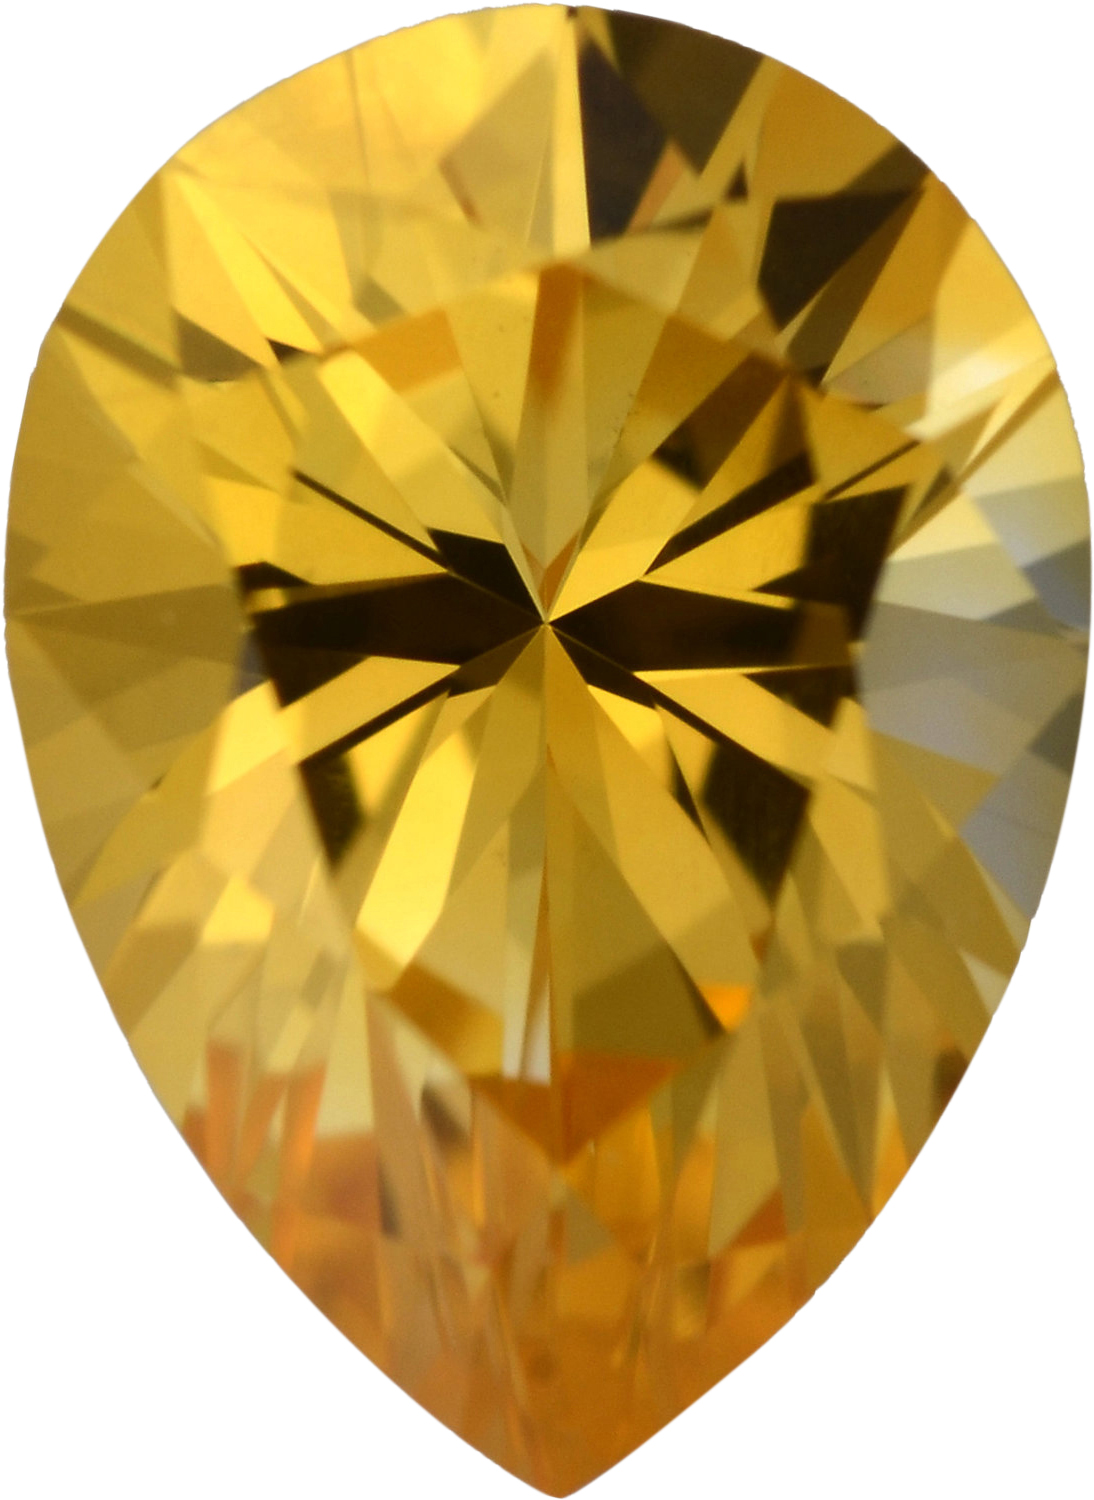 Gorgeous Sapphire Loose Gem in Pear Cut, Light Orangy Yellow, 7.71 x 5.64  mm, 1.13 Carats